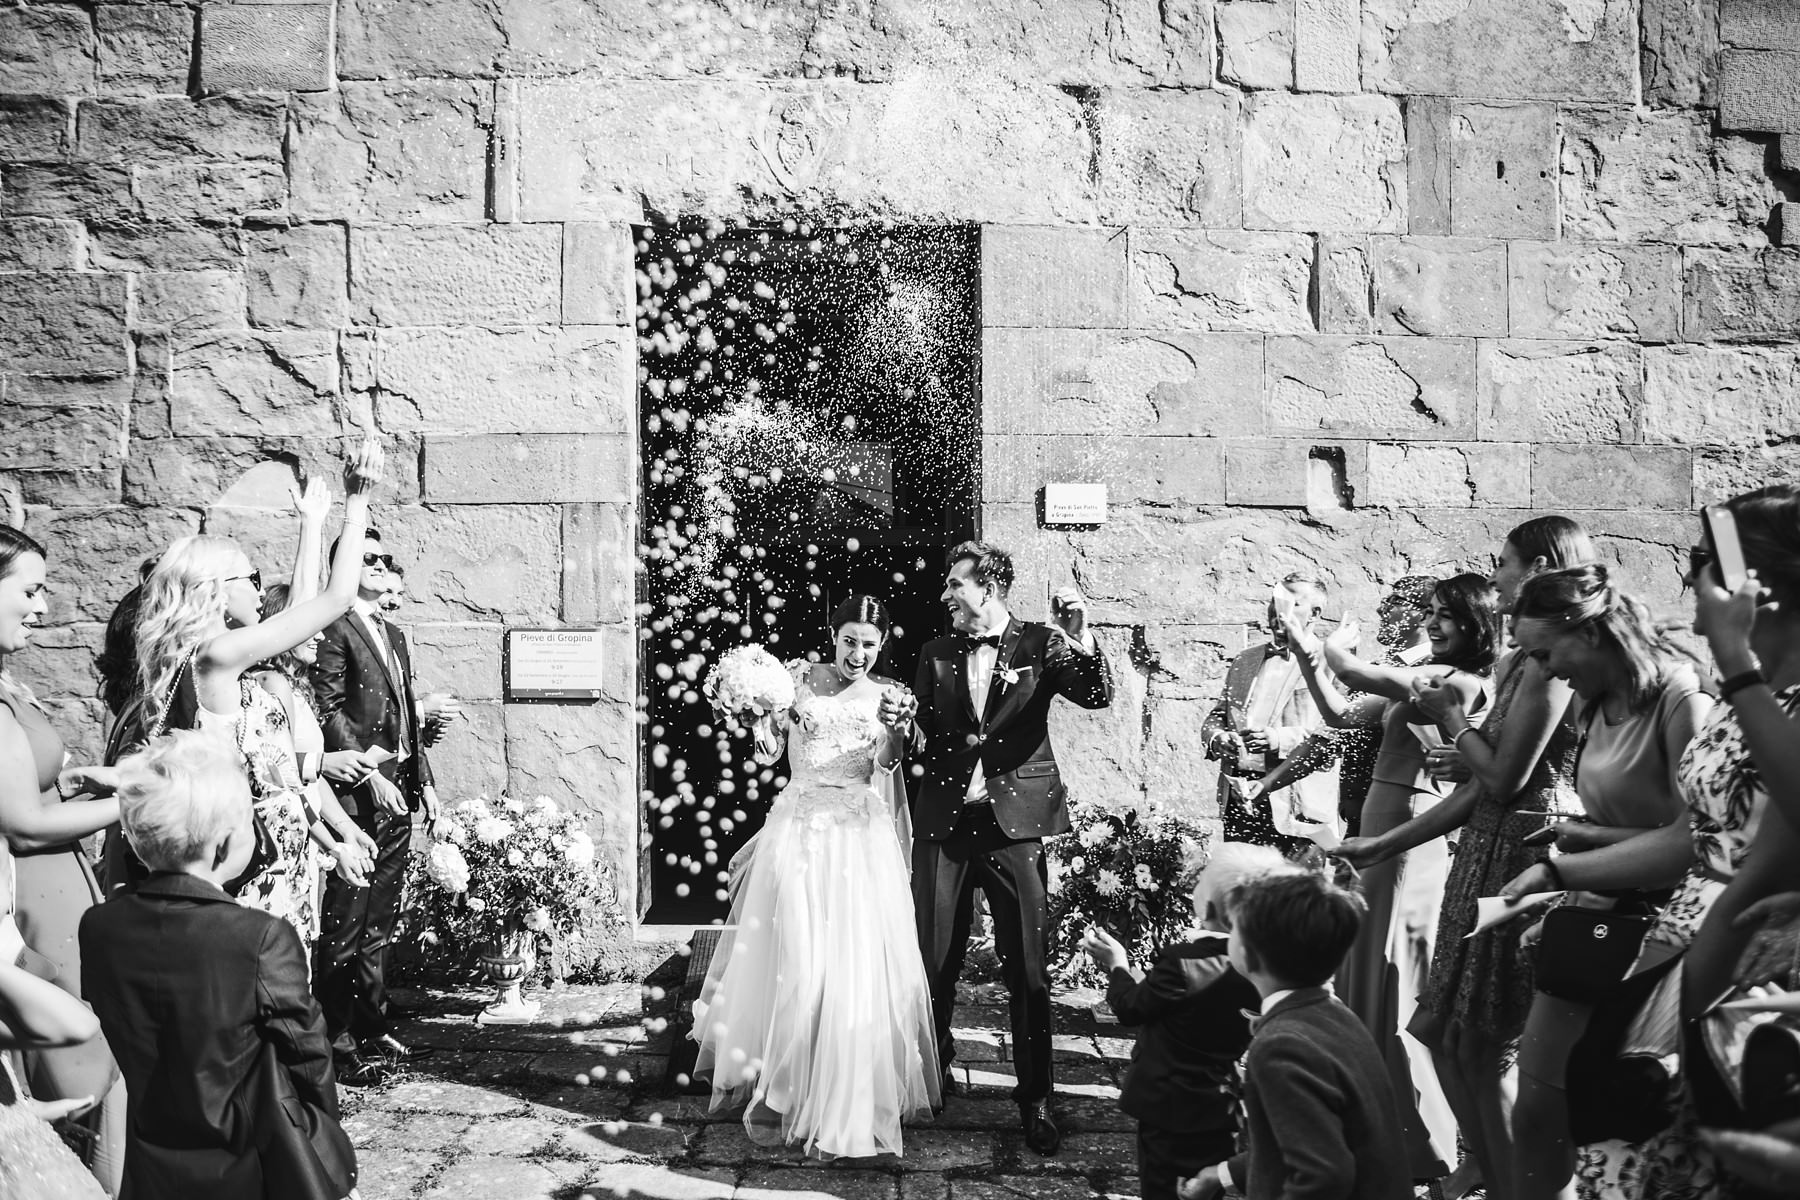 Exciting petal throwing for bride and groom at Pieve di Gropina